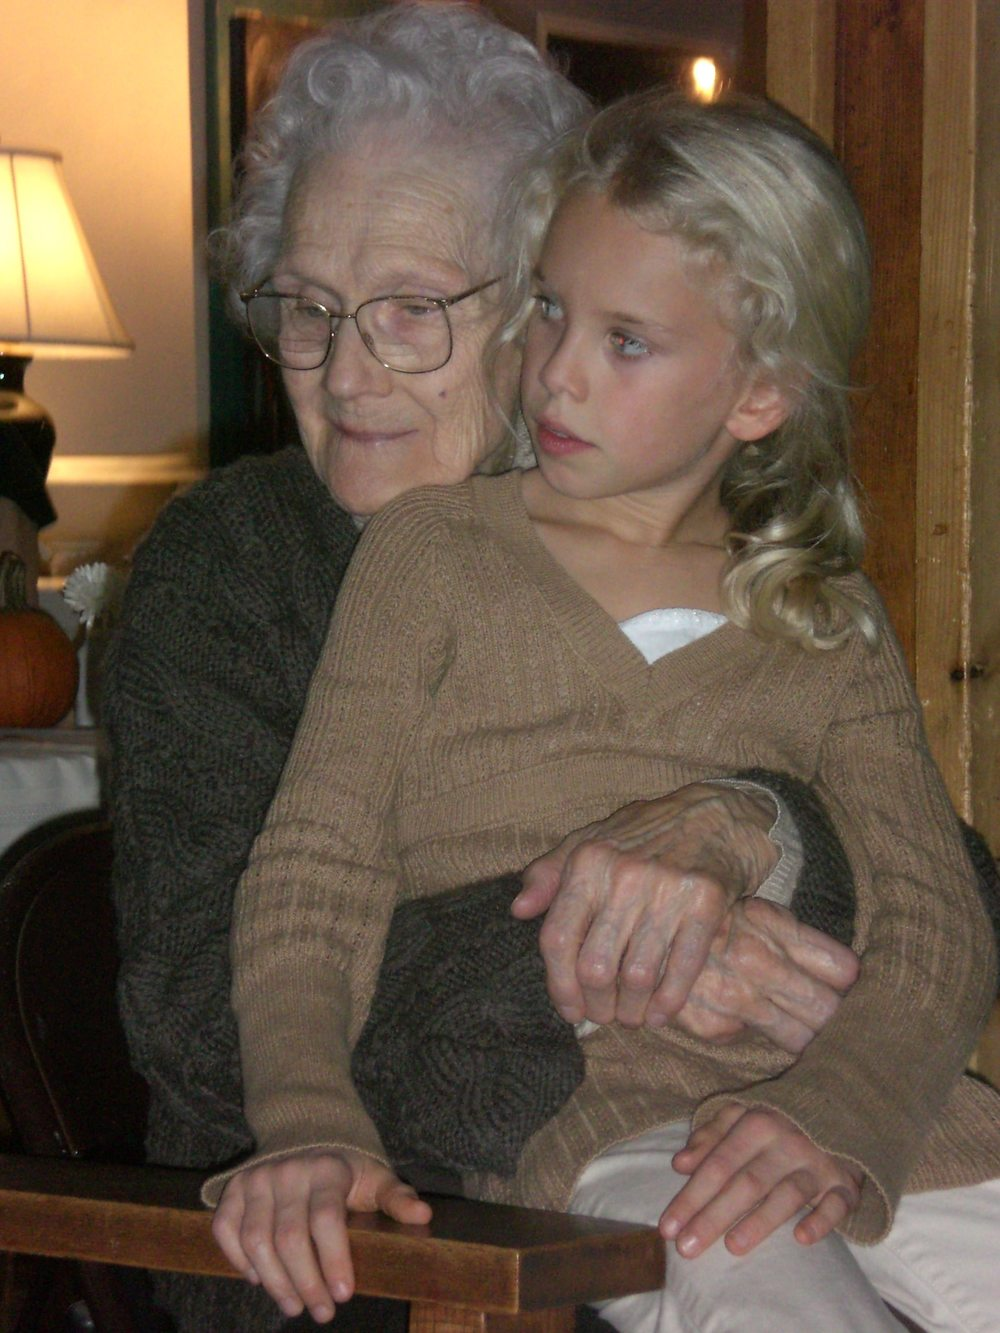 With her grandmother